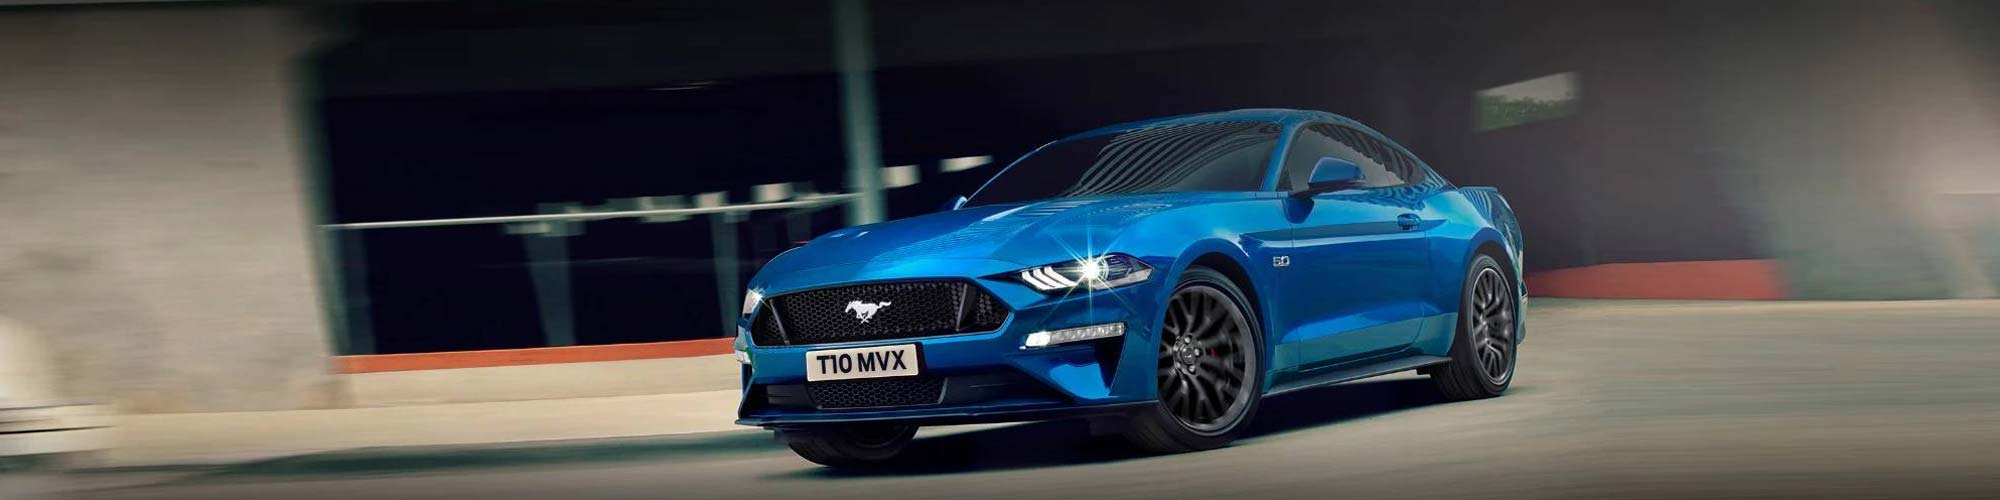 ford mustang Banner